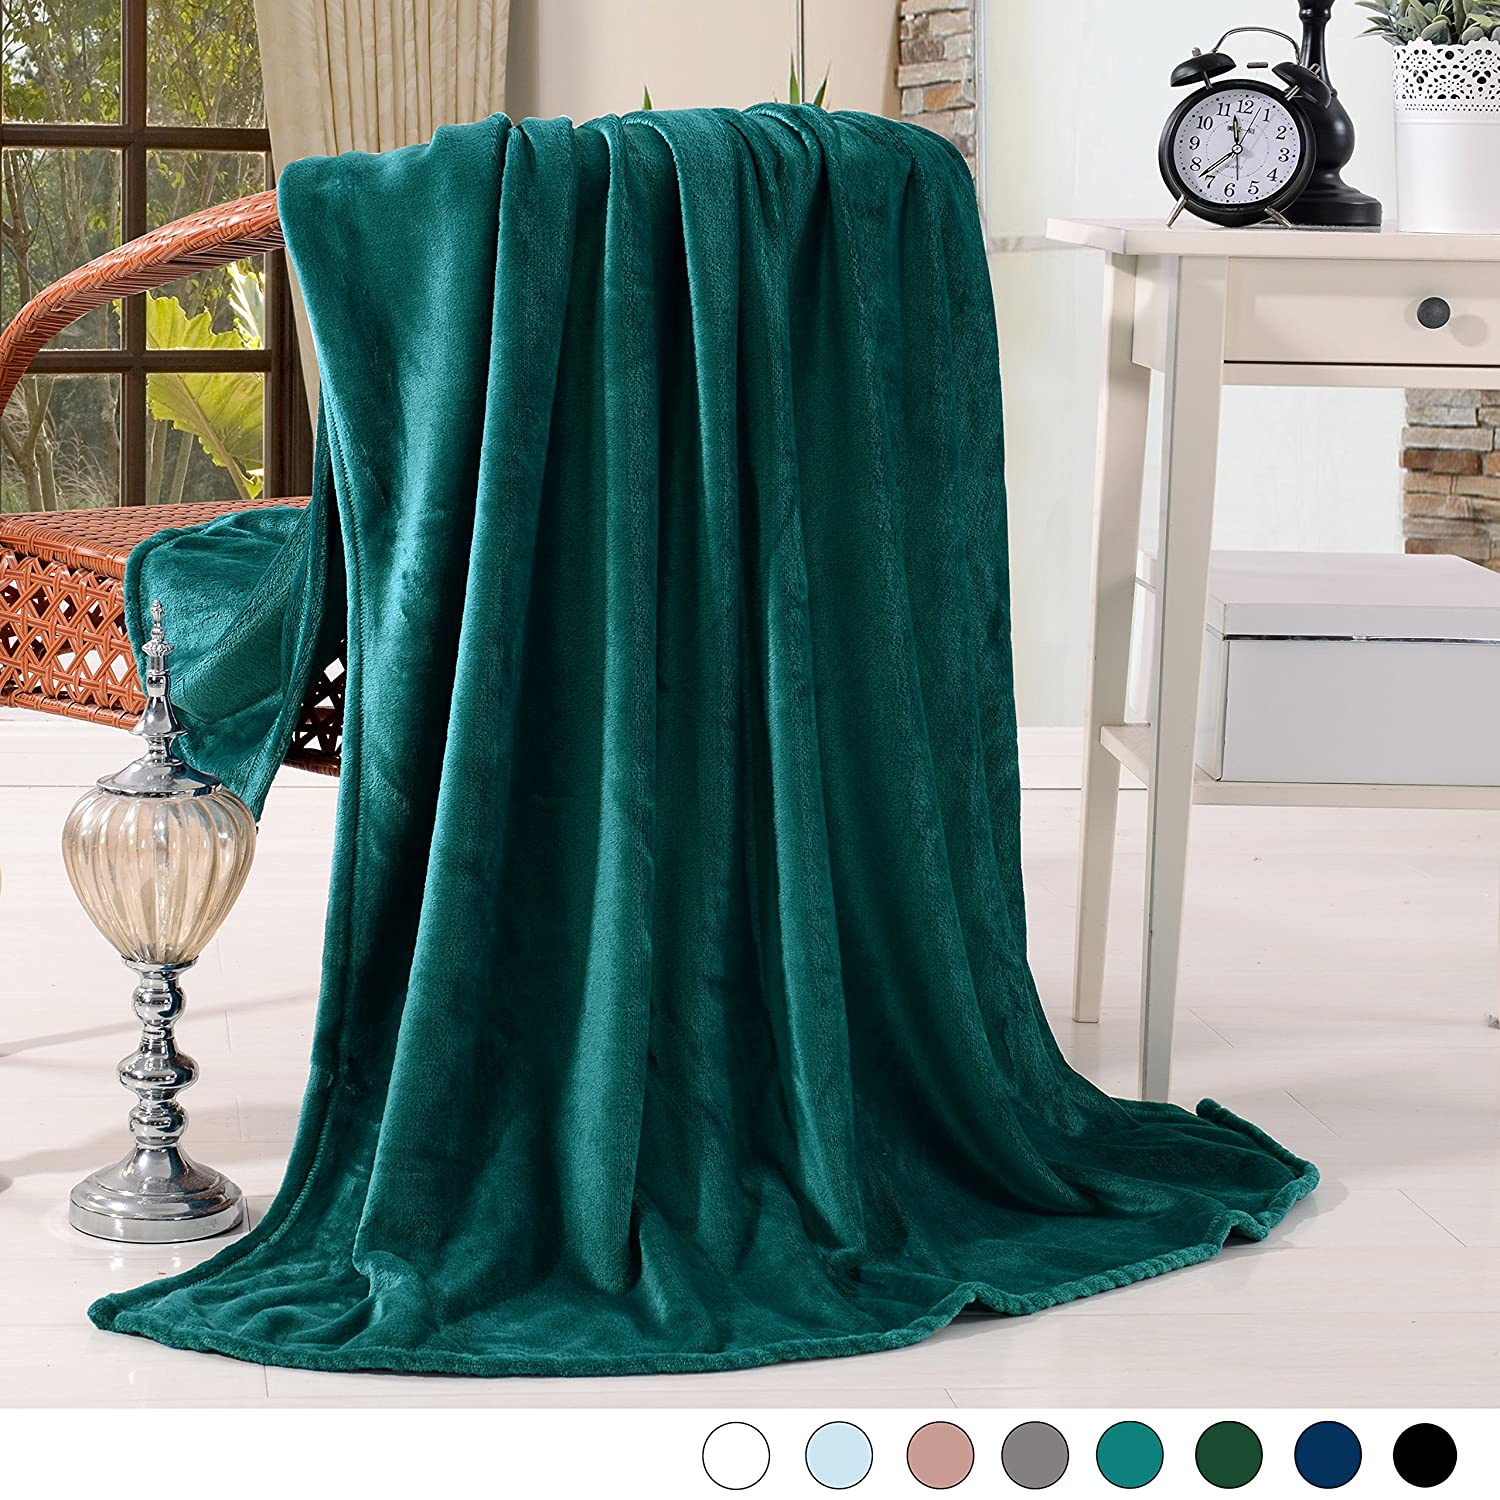 "Exclusivo Mezcla Luxury Flannel Velvet Plush Throw Blanket – 50"" X 60"" (Teal) by Exclusivo Mezcla"